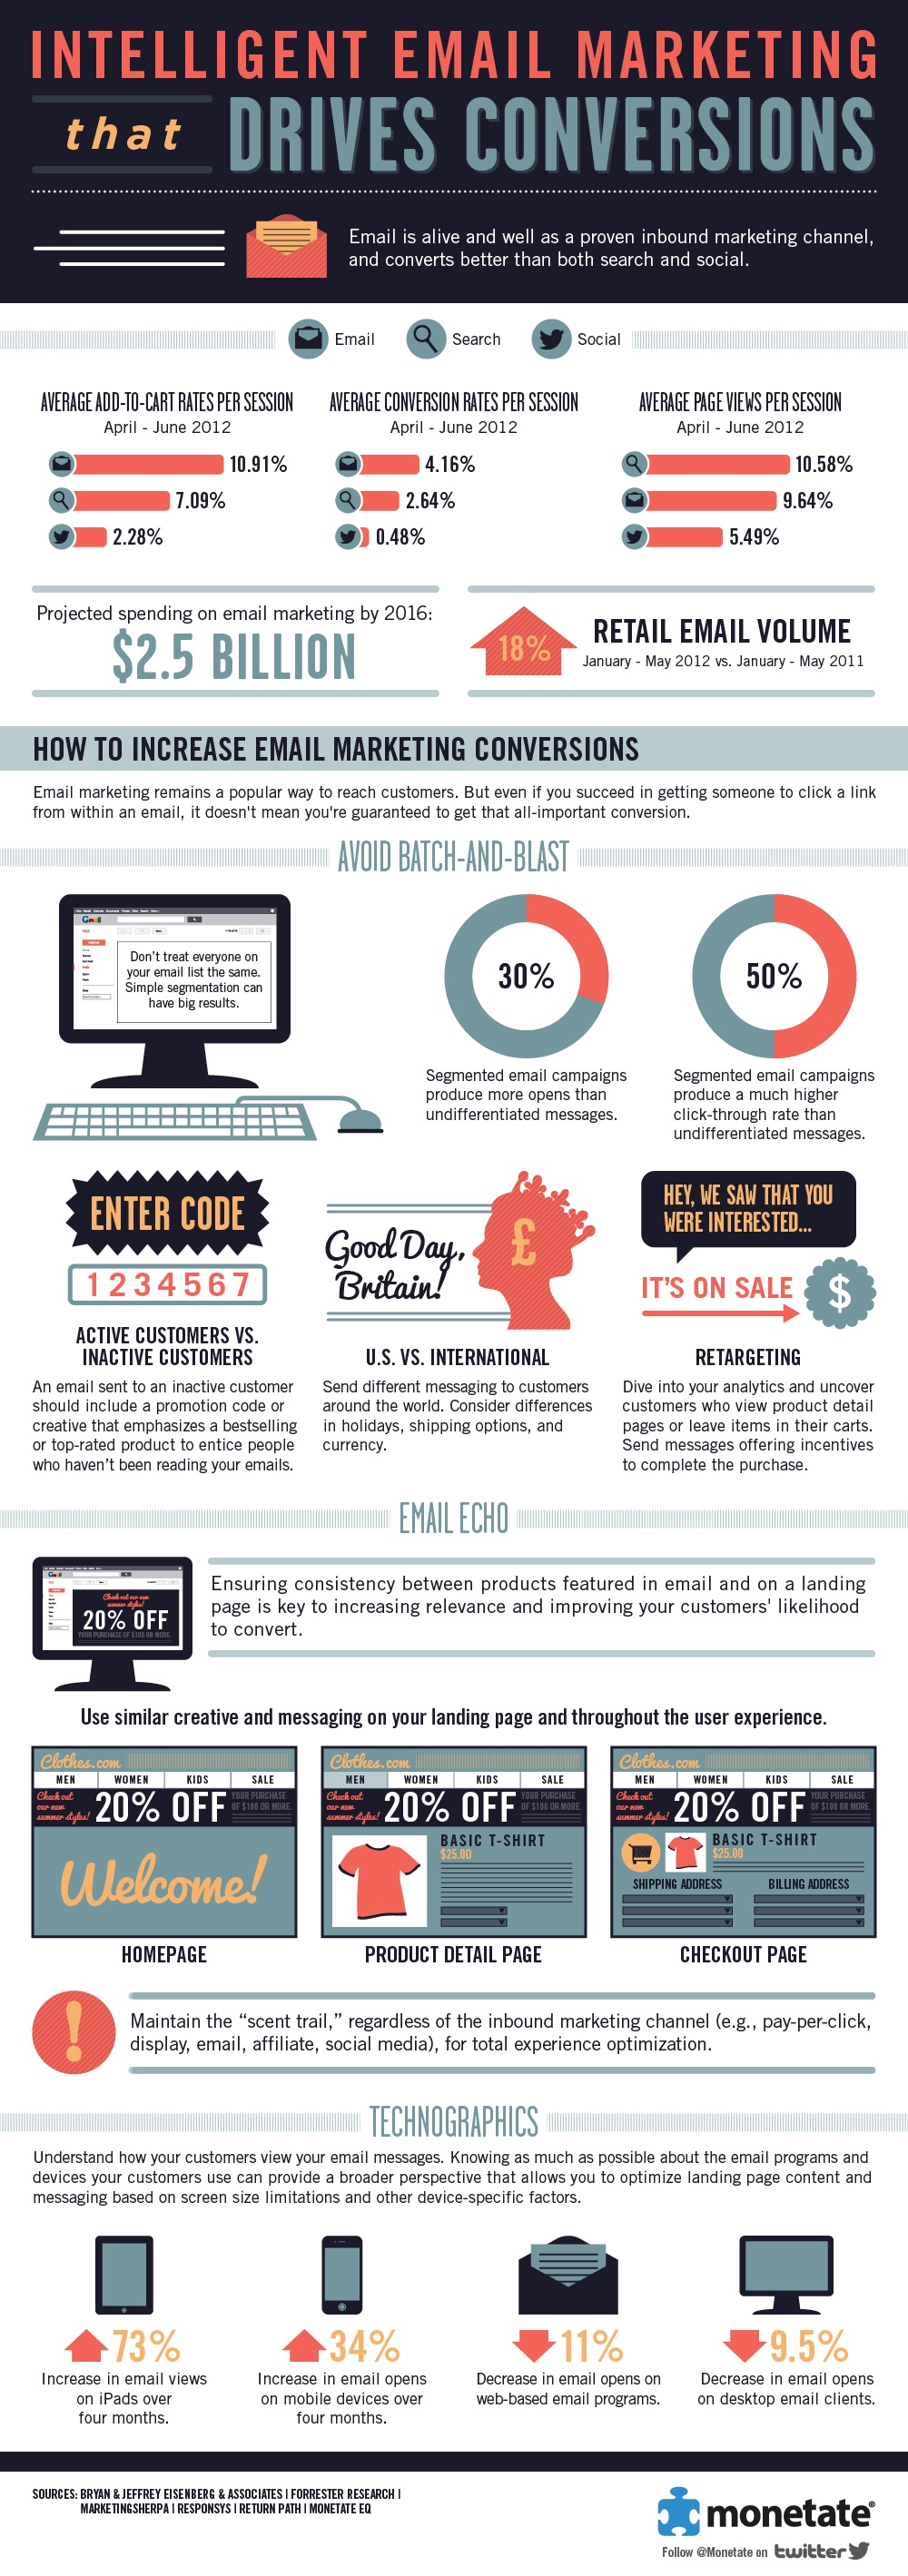 Intelligent-Email-Marketing-That-Drives-Conversions-infographic